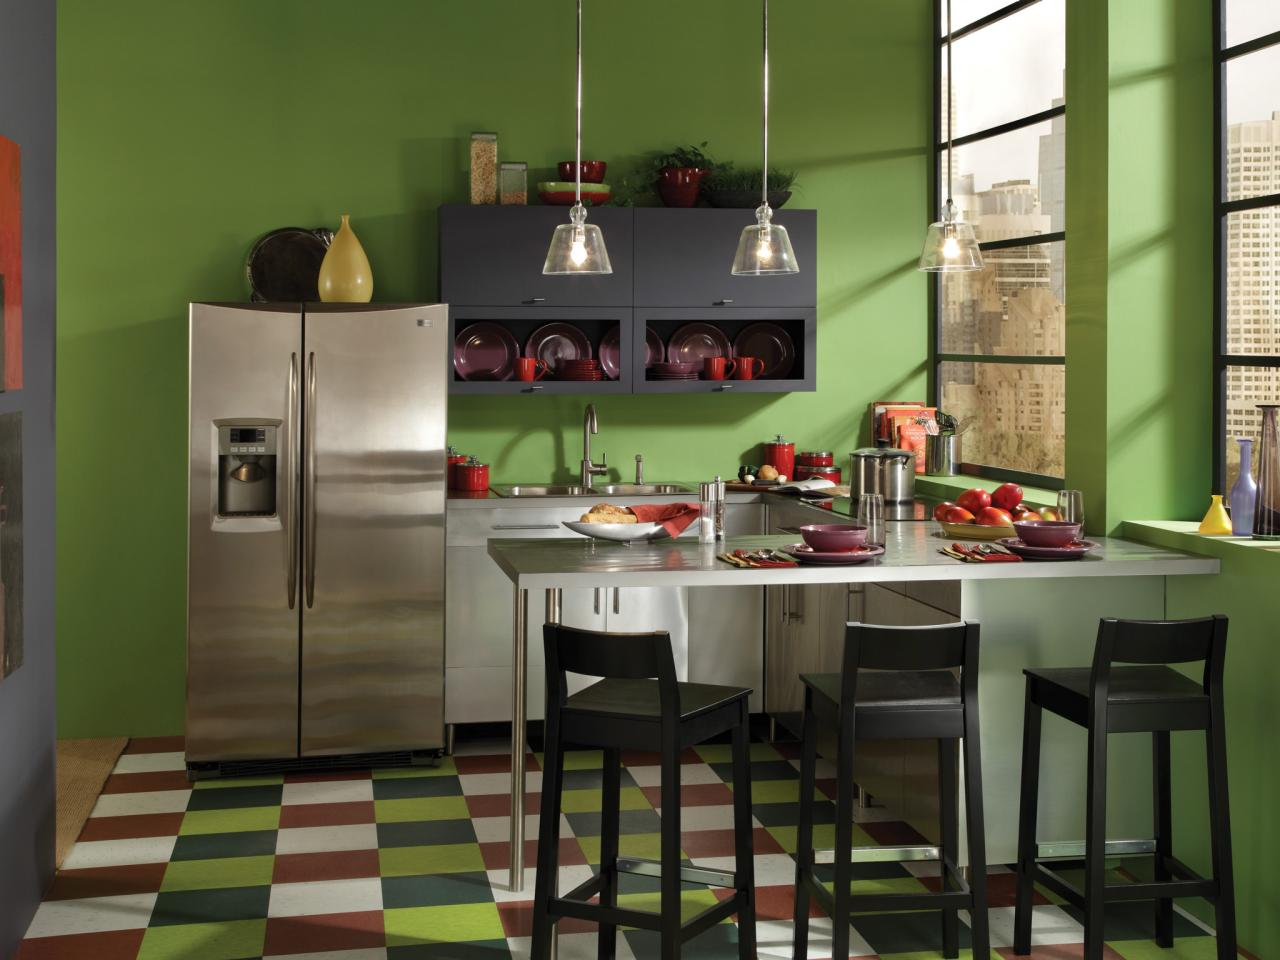 Best Colors to Paint a Kitchen. Best Colors to Paint a Kitchen  Pictures   Ideas From HGTV   HGTV